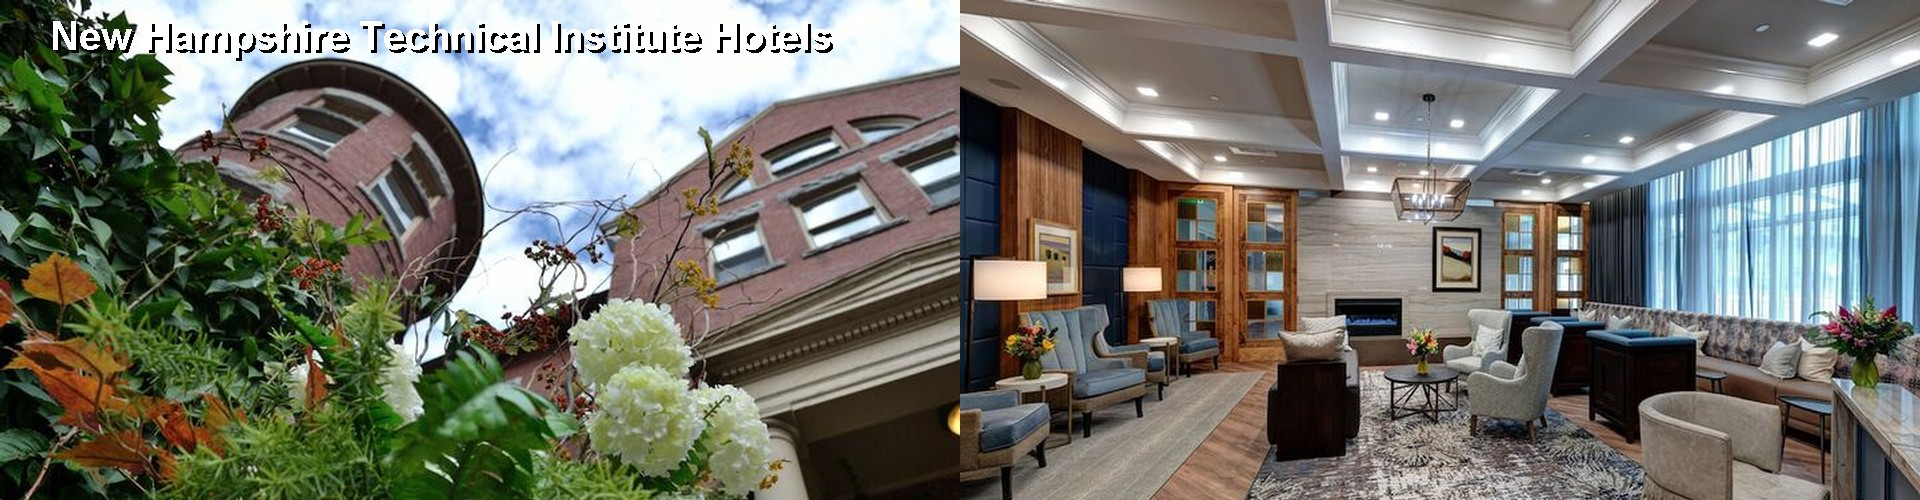 5 Best Hotels near New Hampshire Technical Institute